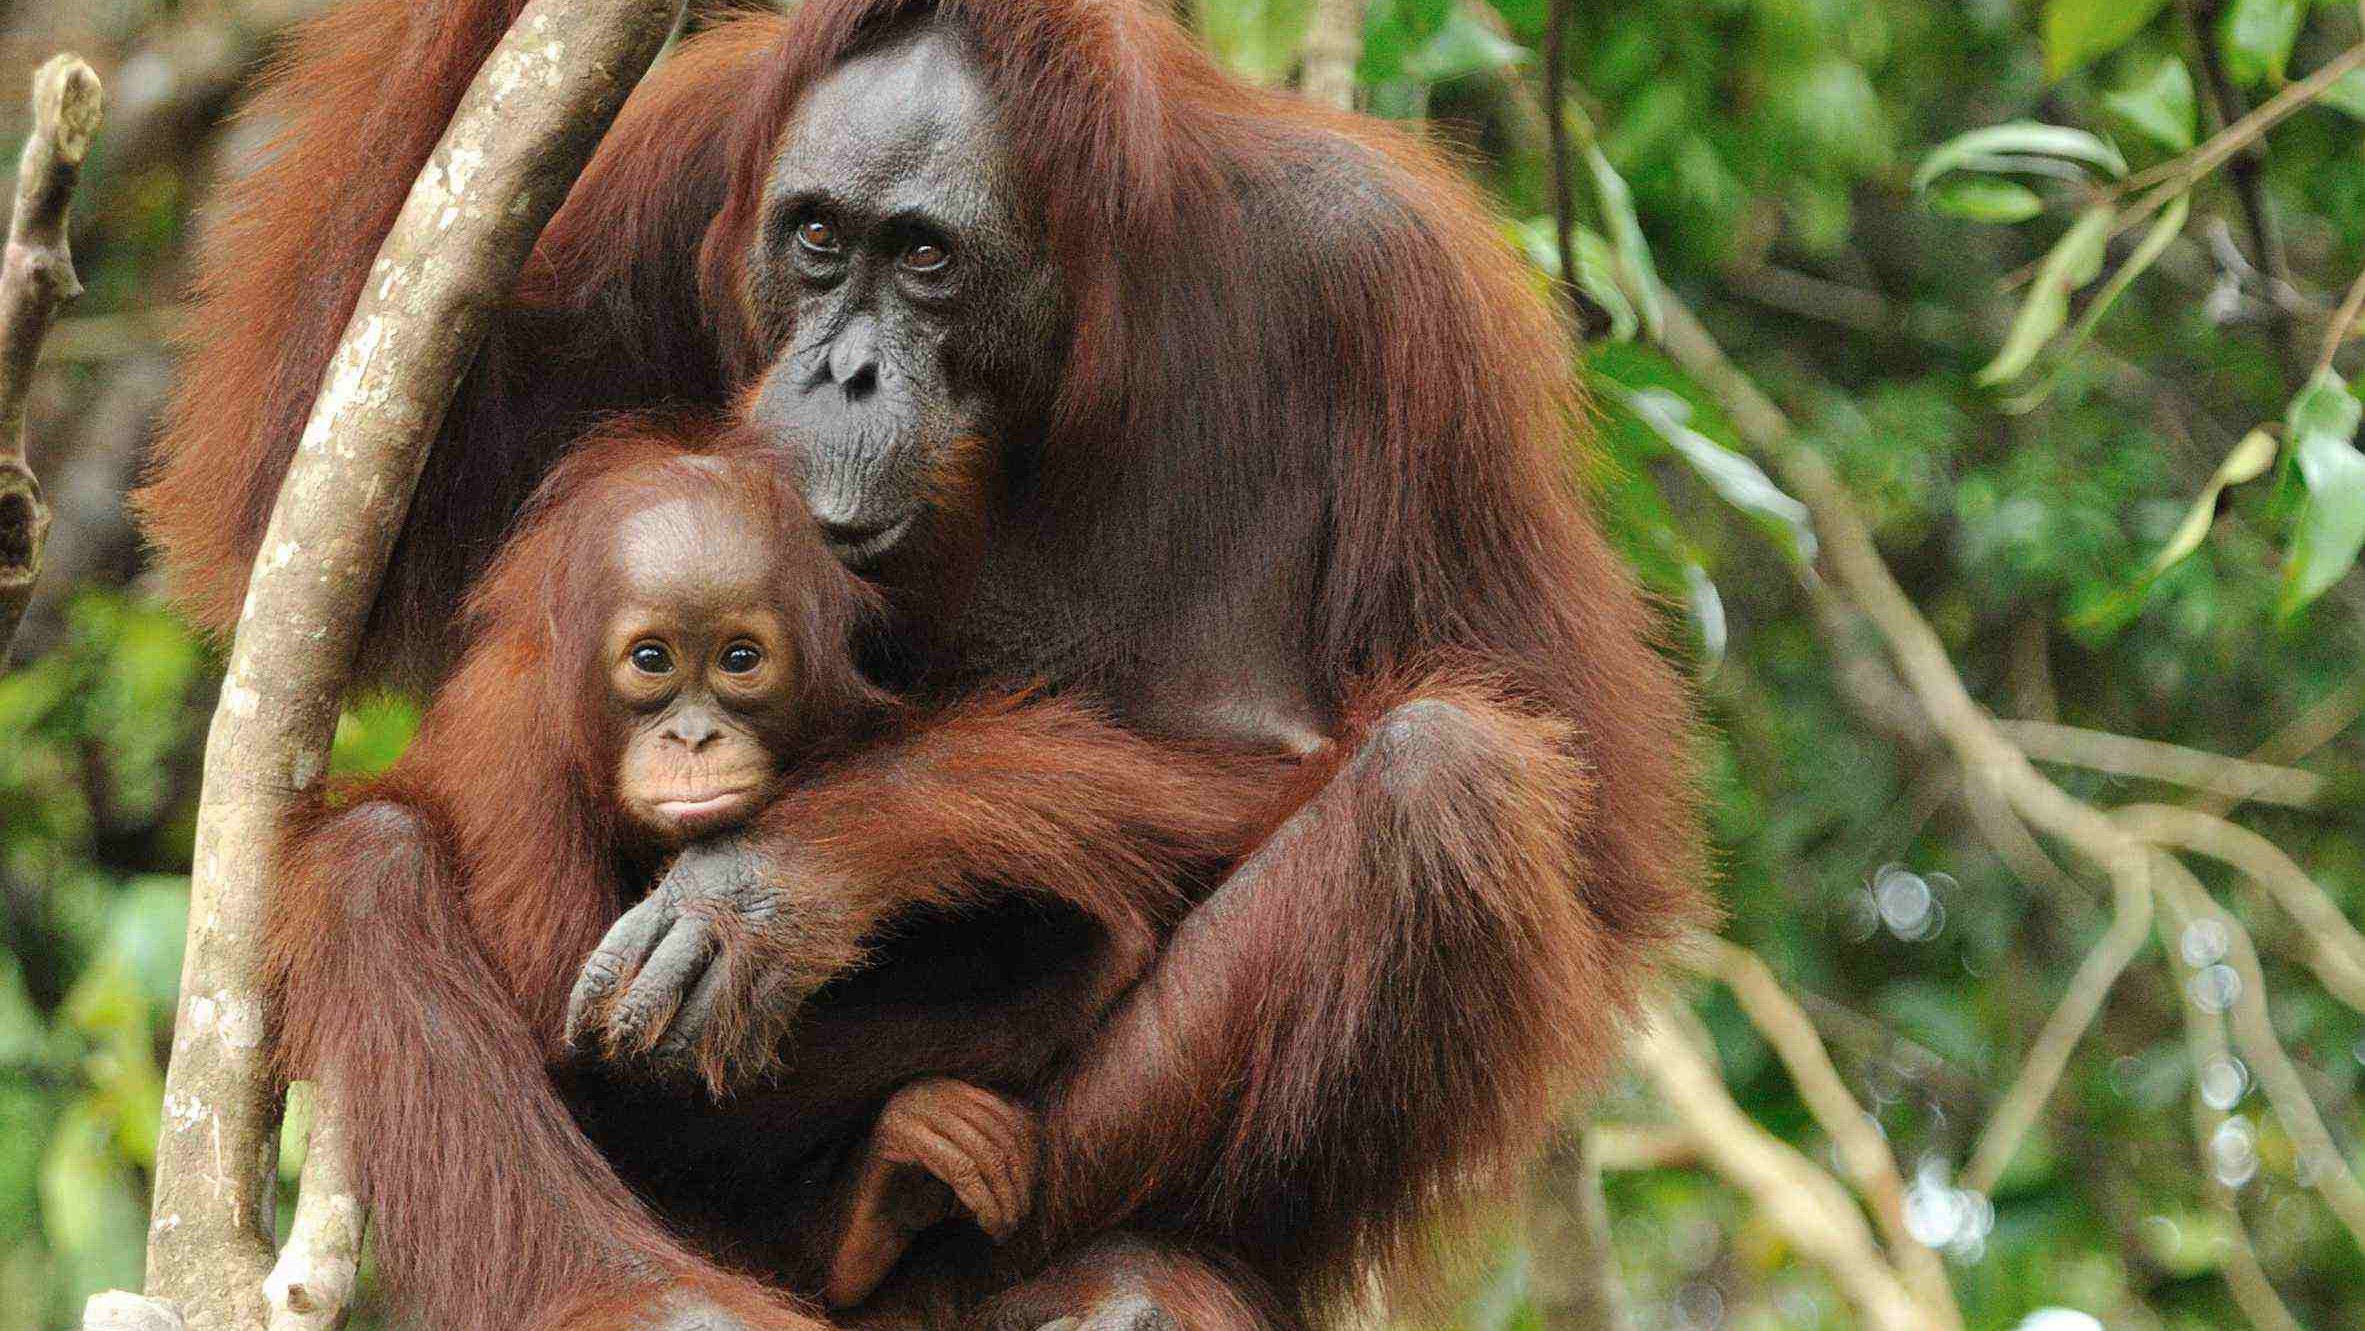 Kutai Park wild orangutan jungle tour, rain forest wildlife Kalimantan Indonesia Borneo safari guide trip